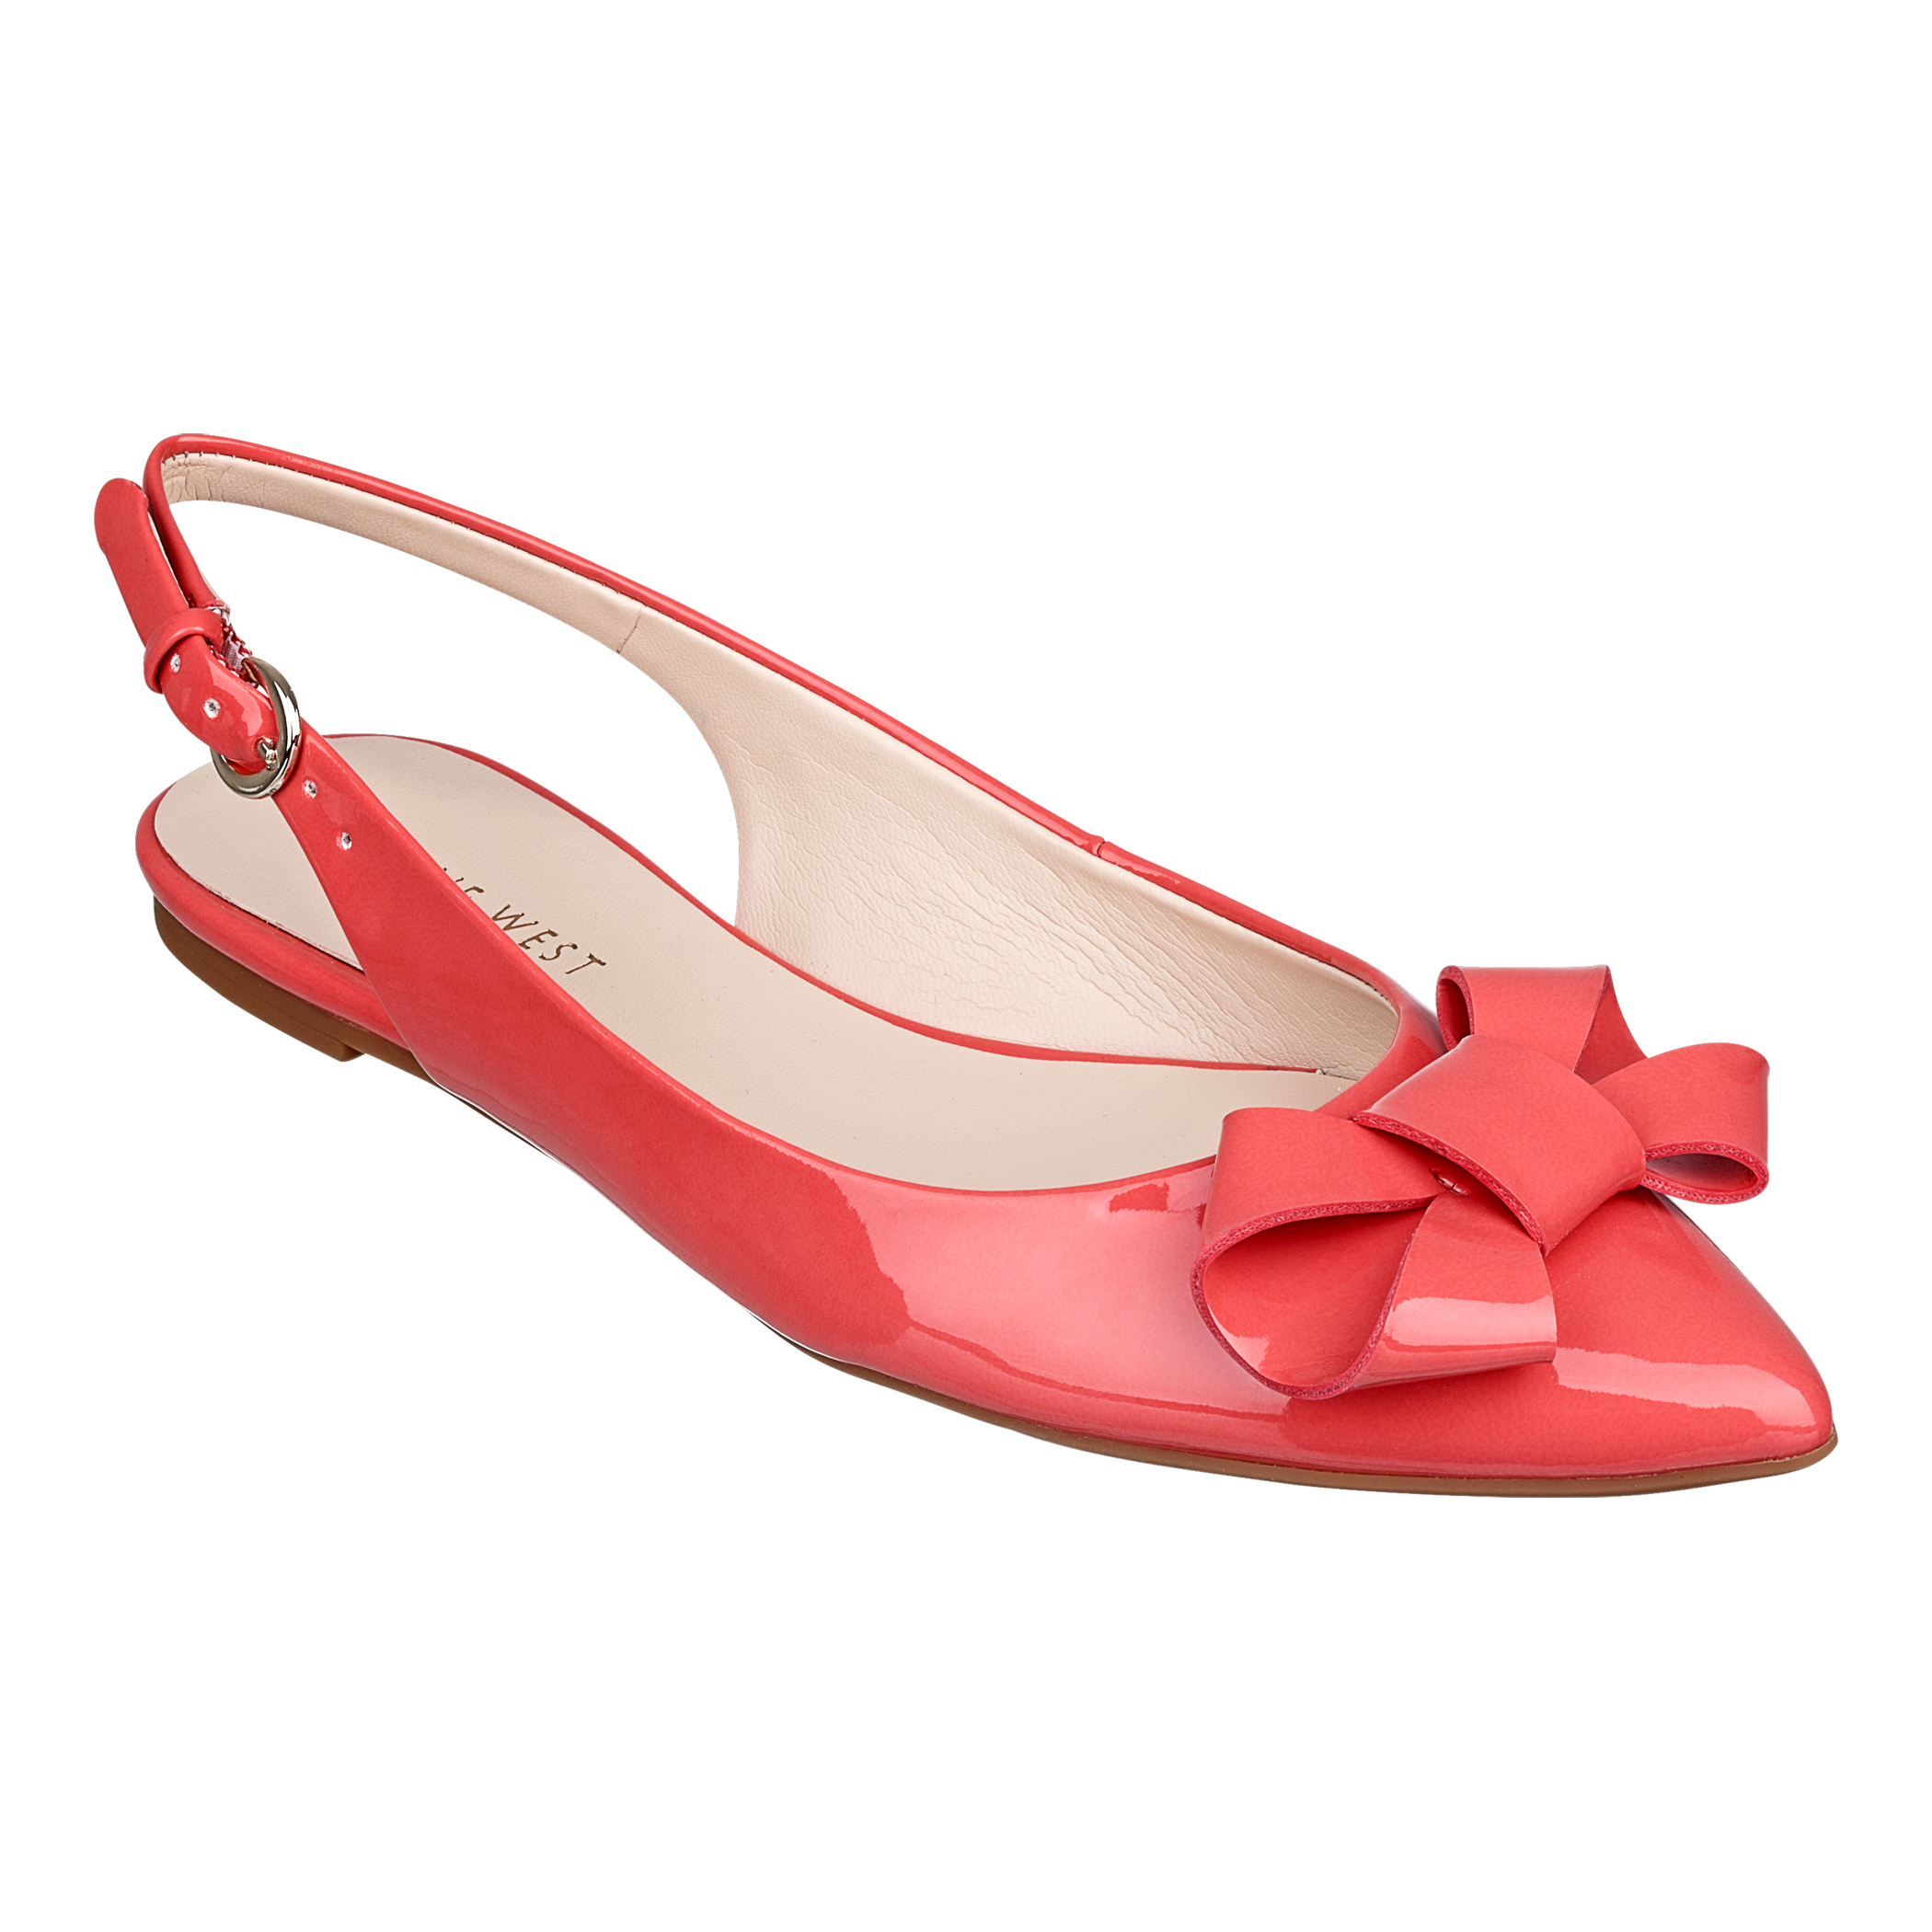 Red Slingback Shoes With Bow